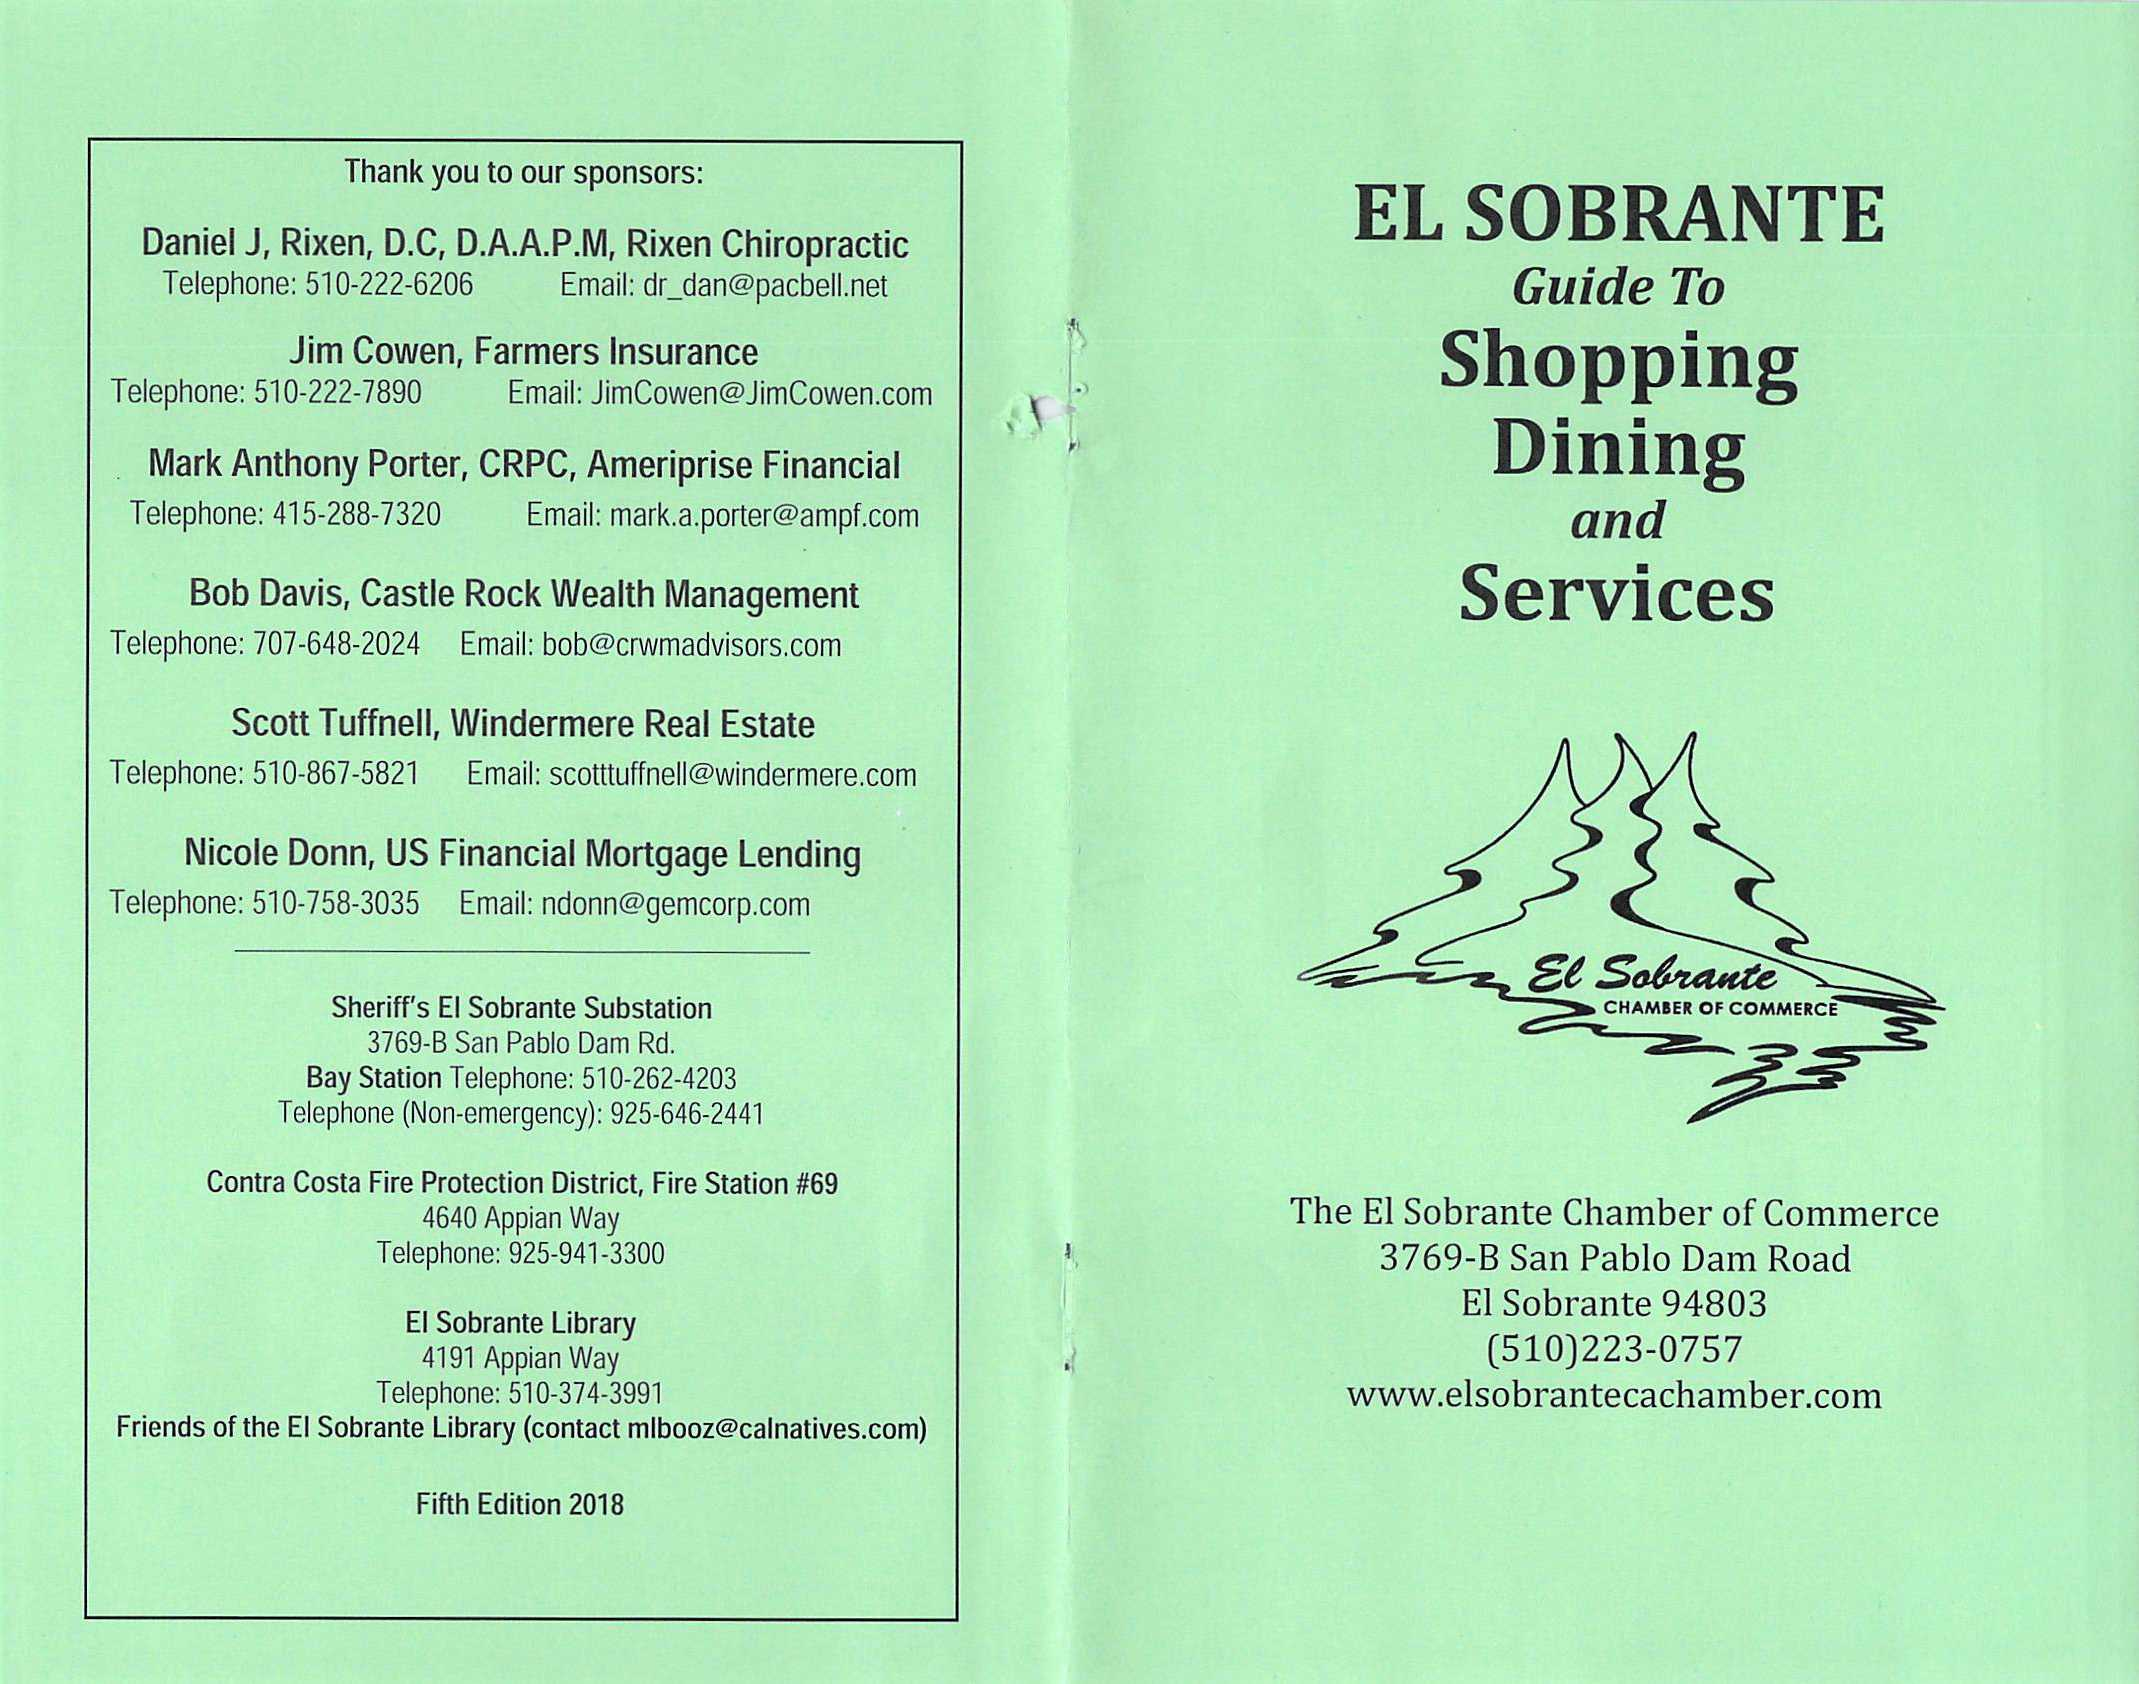 El Sobrante Shopping Dining and Services_1.jpg